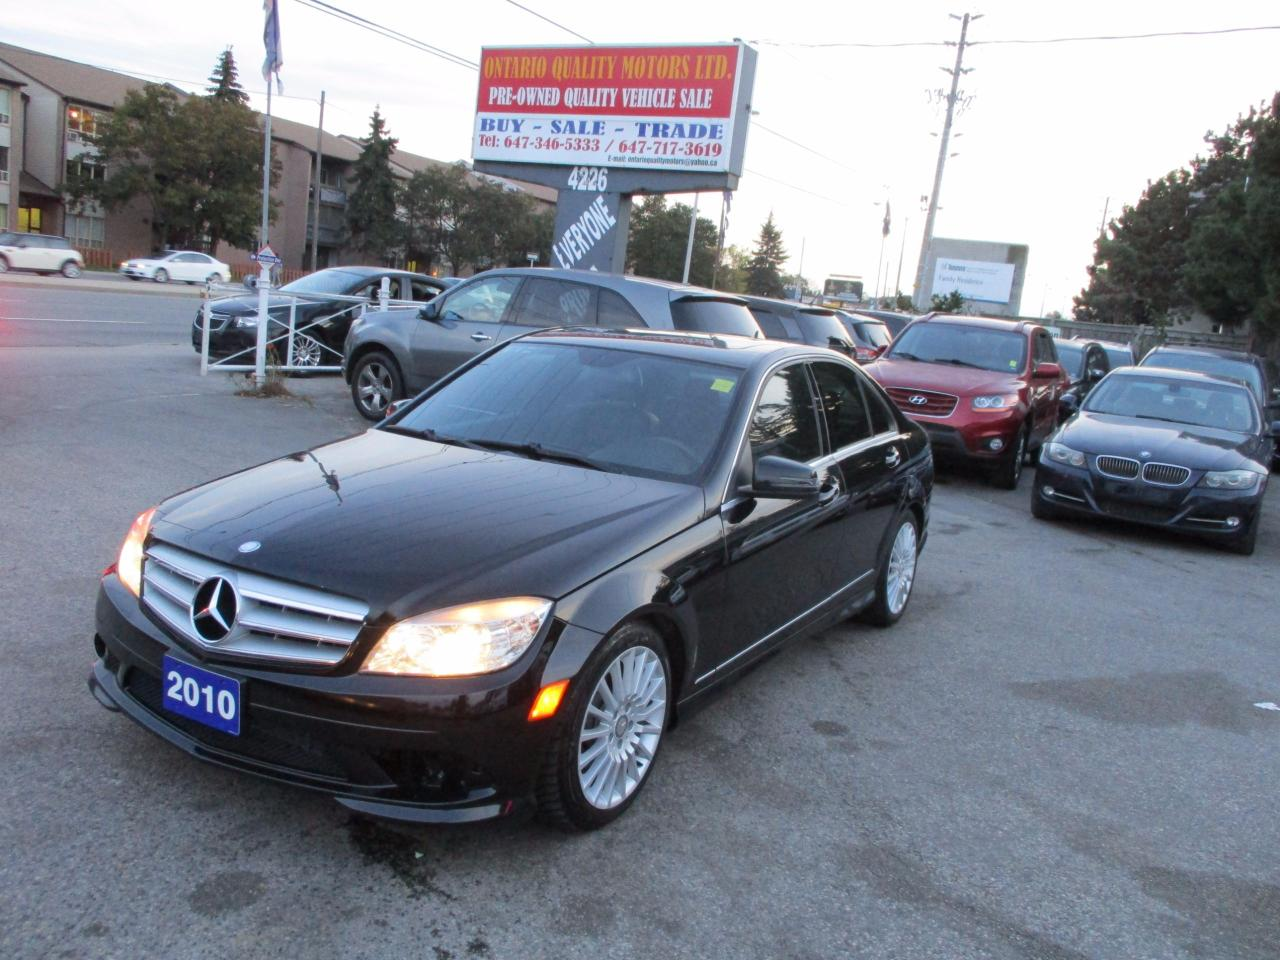 Used 2010 mercedes benz c250 c 250 leather sunroof for for 2010 mercedes benz c250